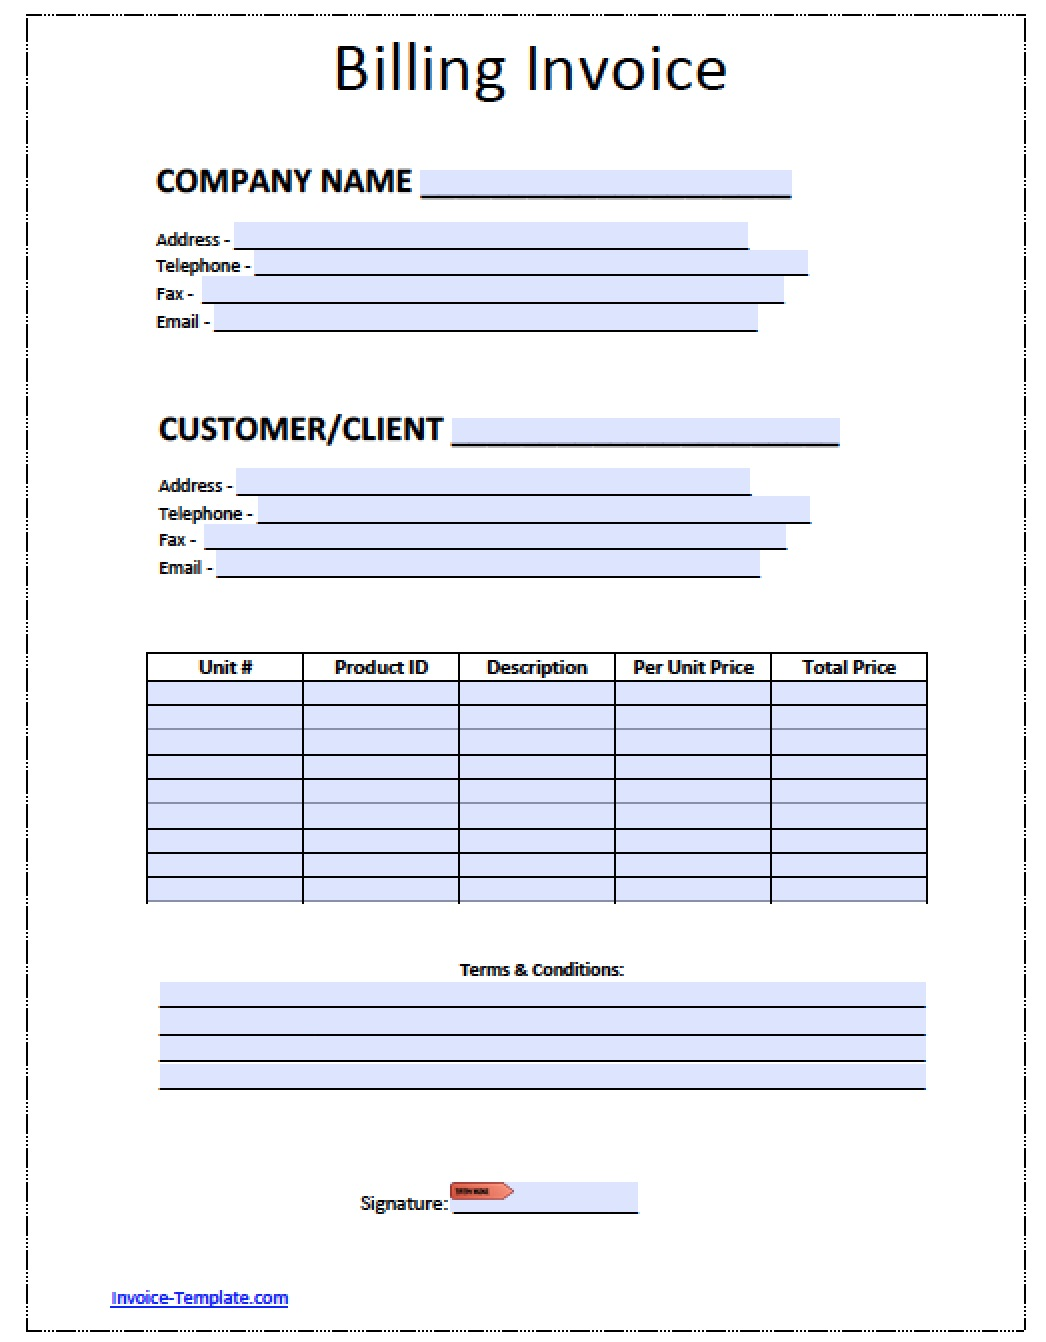 Darkfaderus  Winning Billing Invoice Invoices Faq U Cloudflare Support Billing  With Fetching Free Billing Invoice Template  Excel  Pdf  Word Doc  Billing With Appealing Sample Invoice Receipt Also Invoice Place In Addition Bill Invoice Format In Word And International Shipping Invoice As Well As E Invoice Template Additionally Invoice Sample In Word From Happytomco With Darkfaderus  Fetching Billing Invoice Invoices Faq U Cloudflare Support Billing  With Appealing Free Billing Invoice Template  Excel  Pdf  Word Doc  Billing And Winning Sample Invoice Receipt Also Invoice Place In Addition Bill Invoice Format In Word From Happytomco